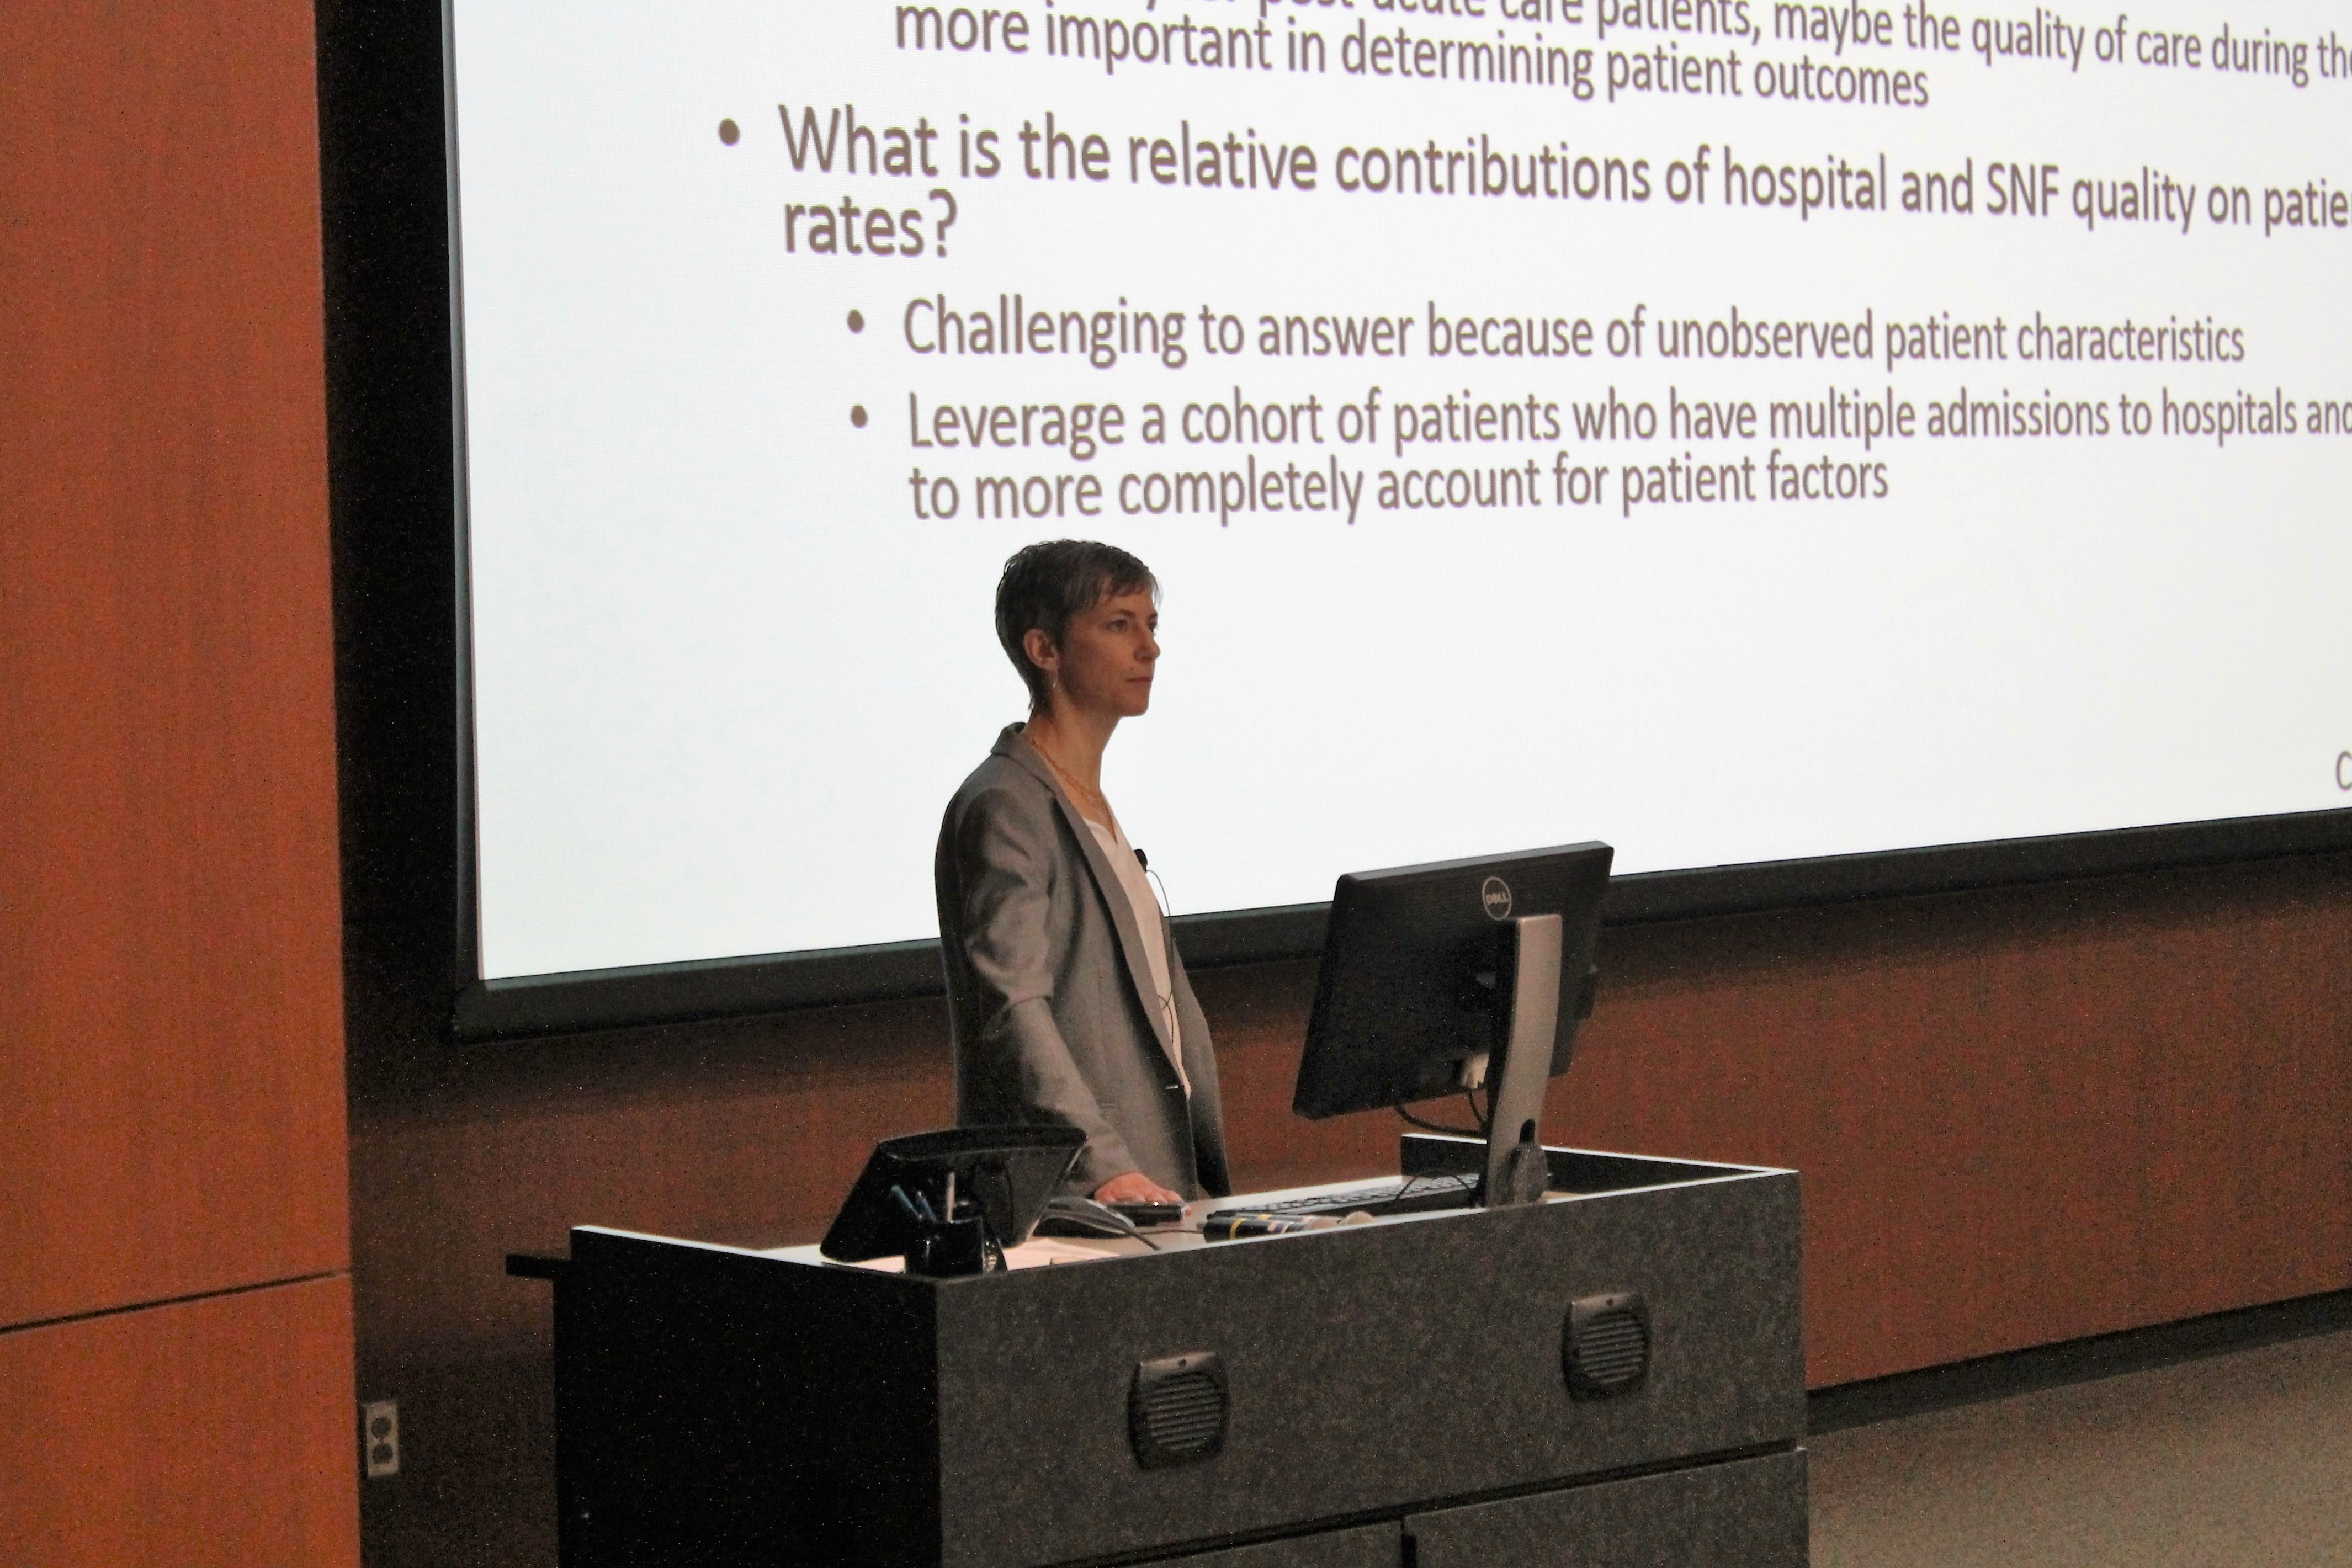 The 5th Annual Health Services Research Day – Improving Outcomes and